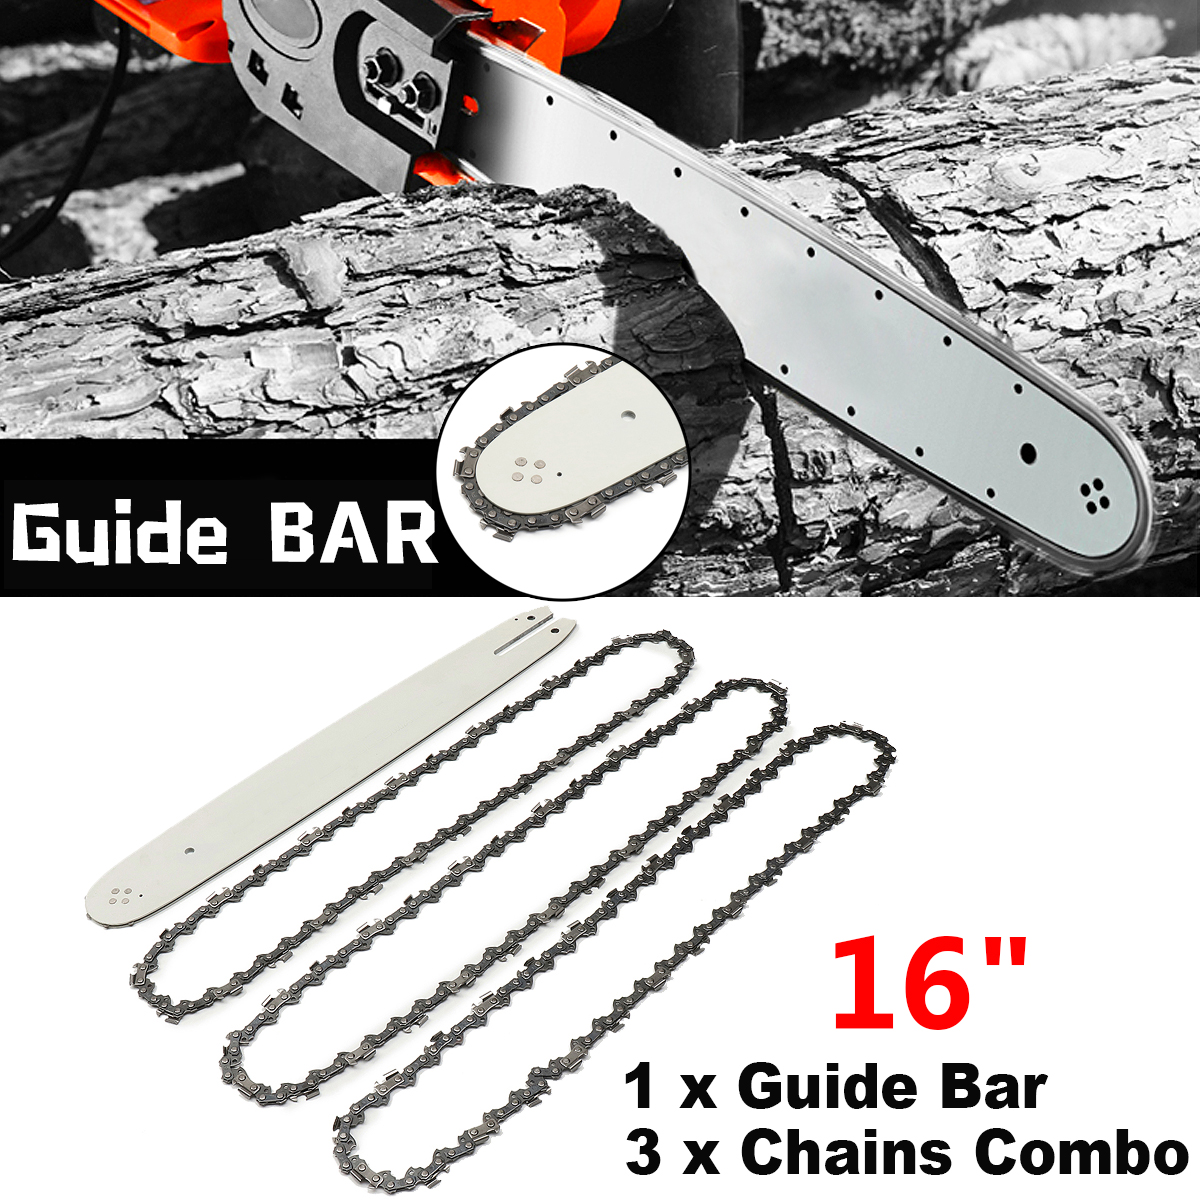 16 Inch Chain Saw Guide Bar with 3pcs Chains for STIHL 009 012 021 E180 MS180 MS19016 Inch Chain Saw Guide Bar with 3pcs Chains for STIHL 009 012 021 E180 MS180 MS190